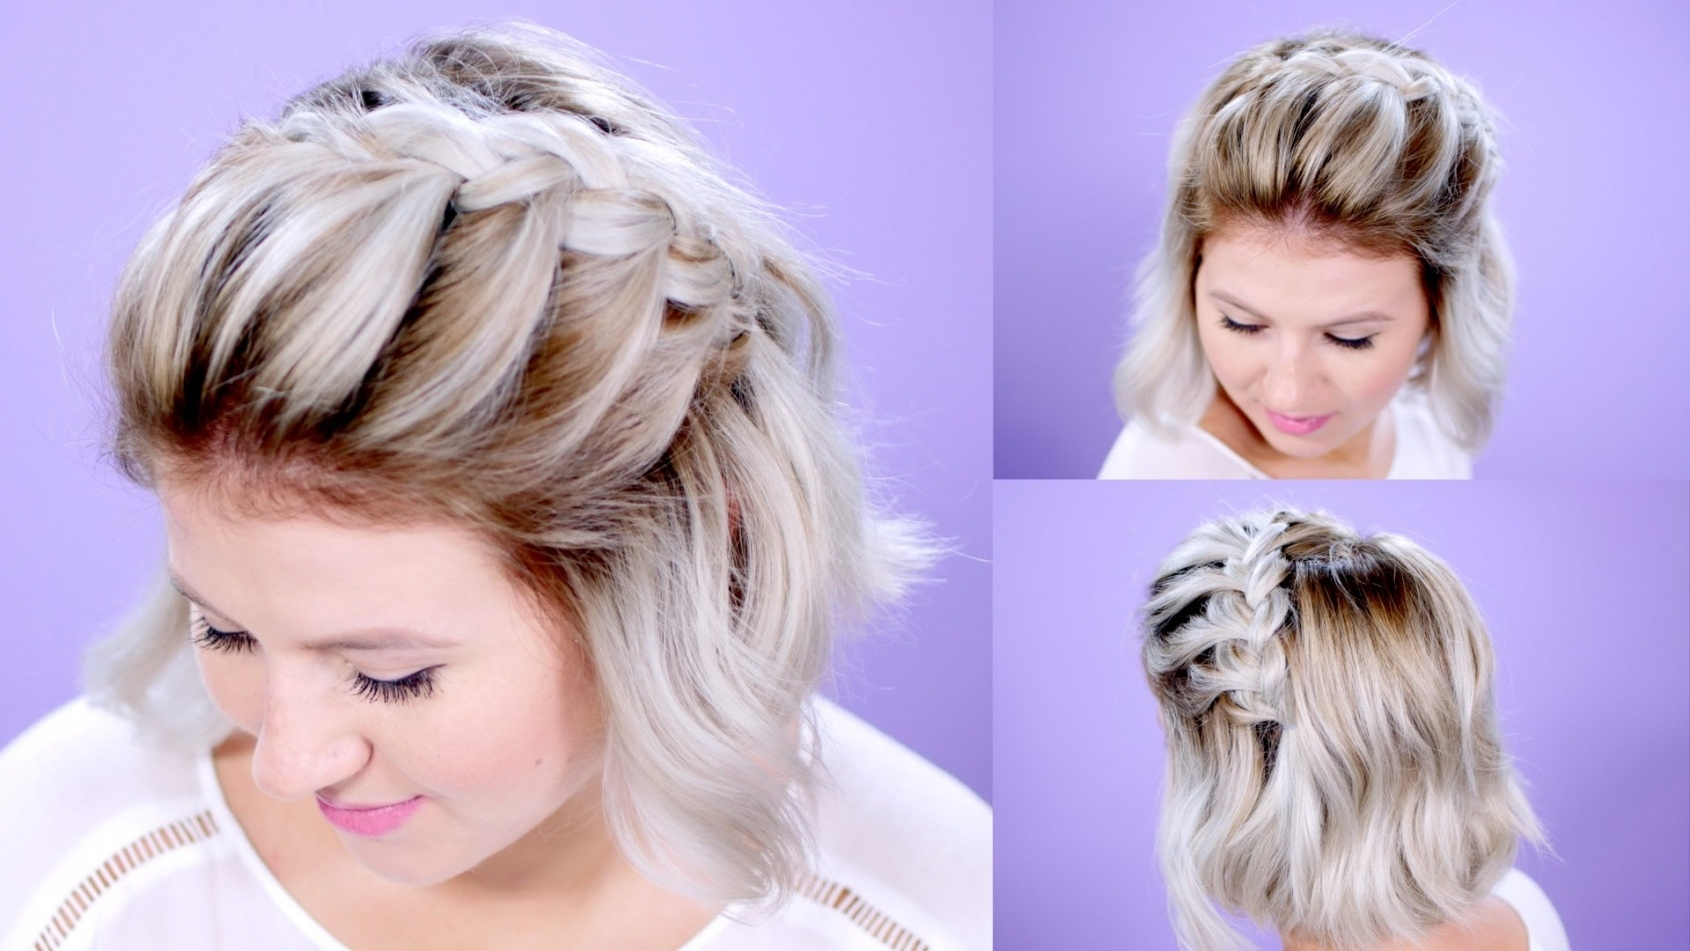 Short Braided Hairstyles (View 14 of 15)